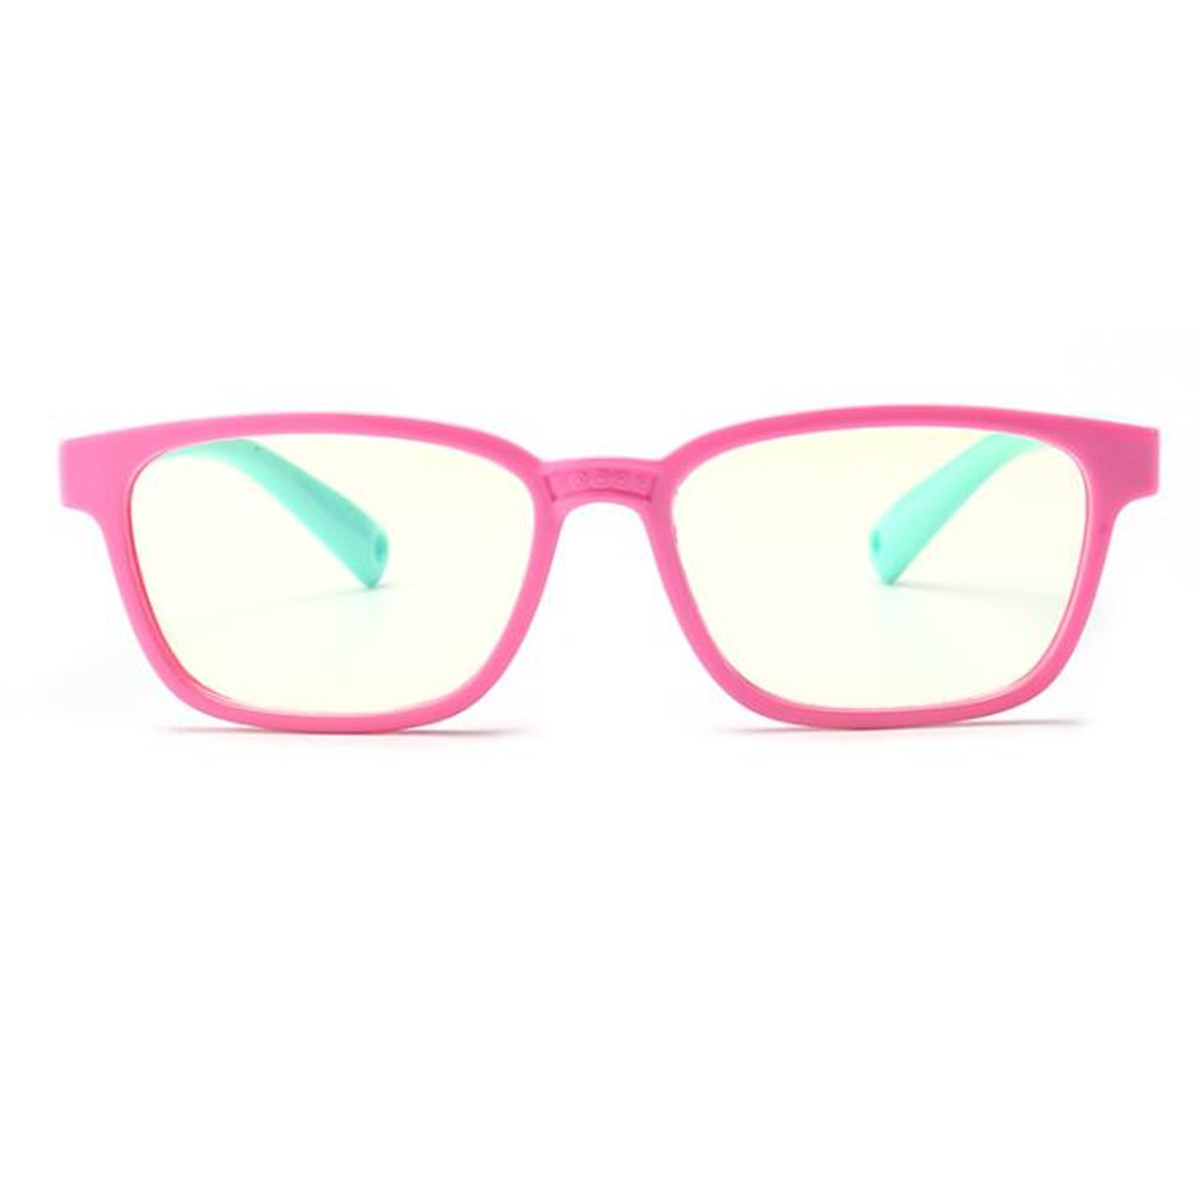 dd36d85aae4f USD 14.85 - 1x Best Colorblindness Corrective Glasses For Red Green color  Blind vision care ...